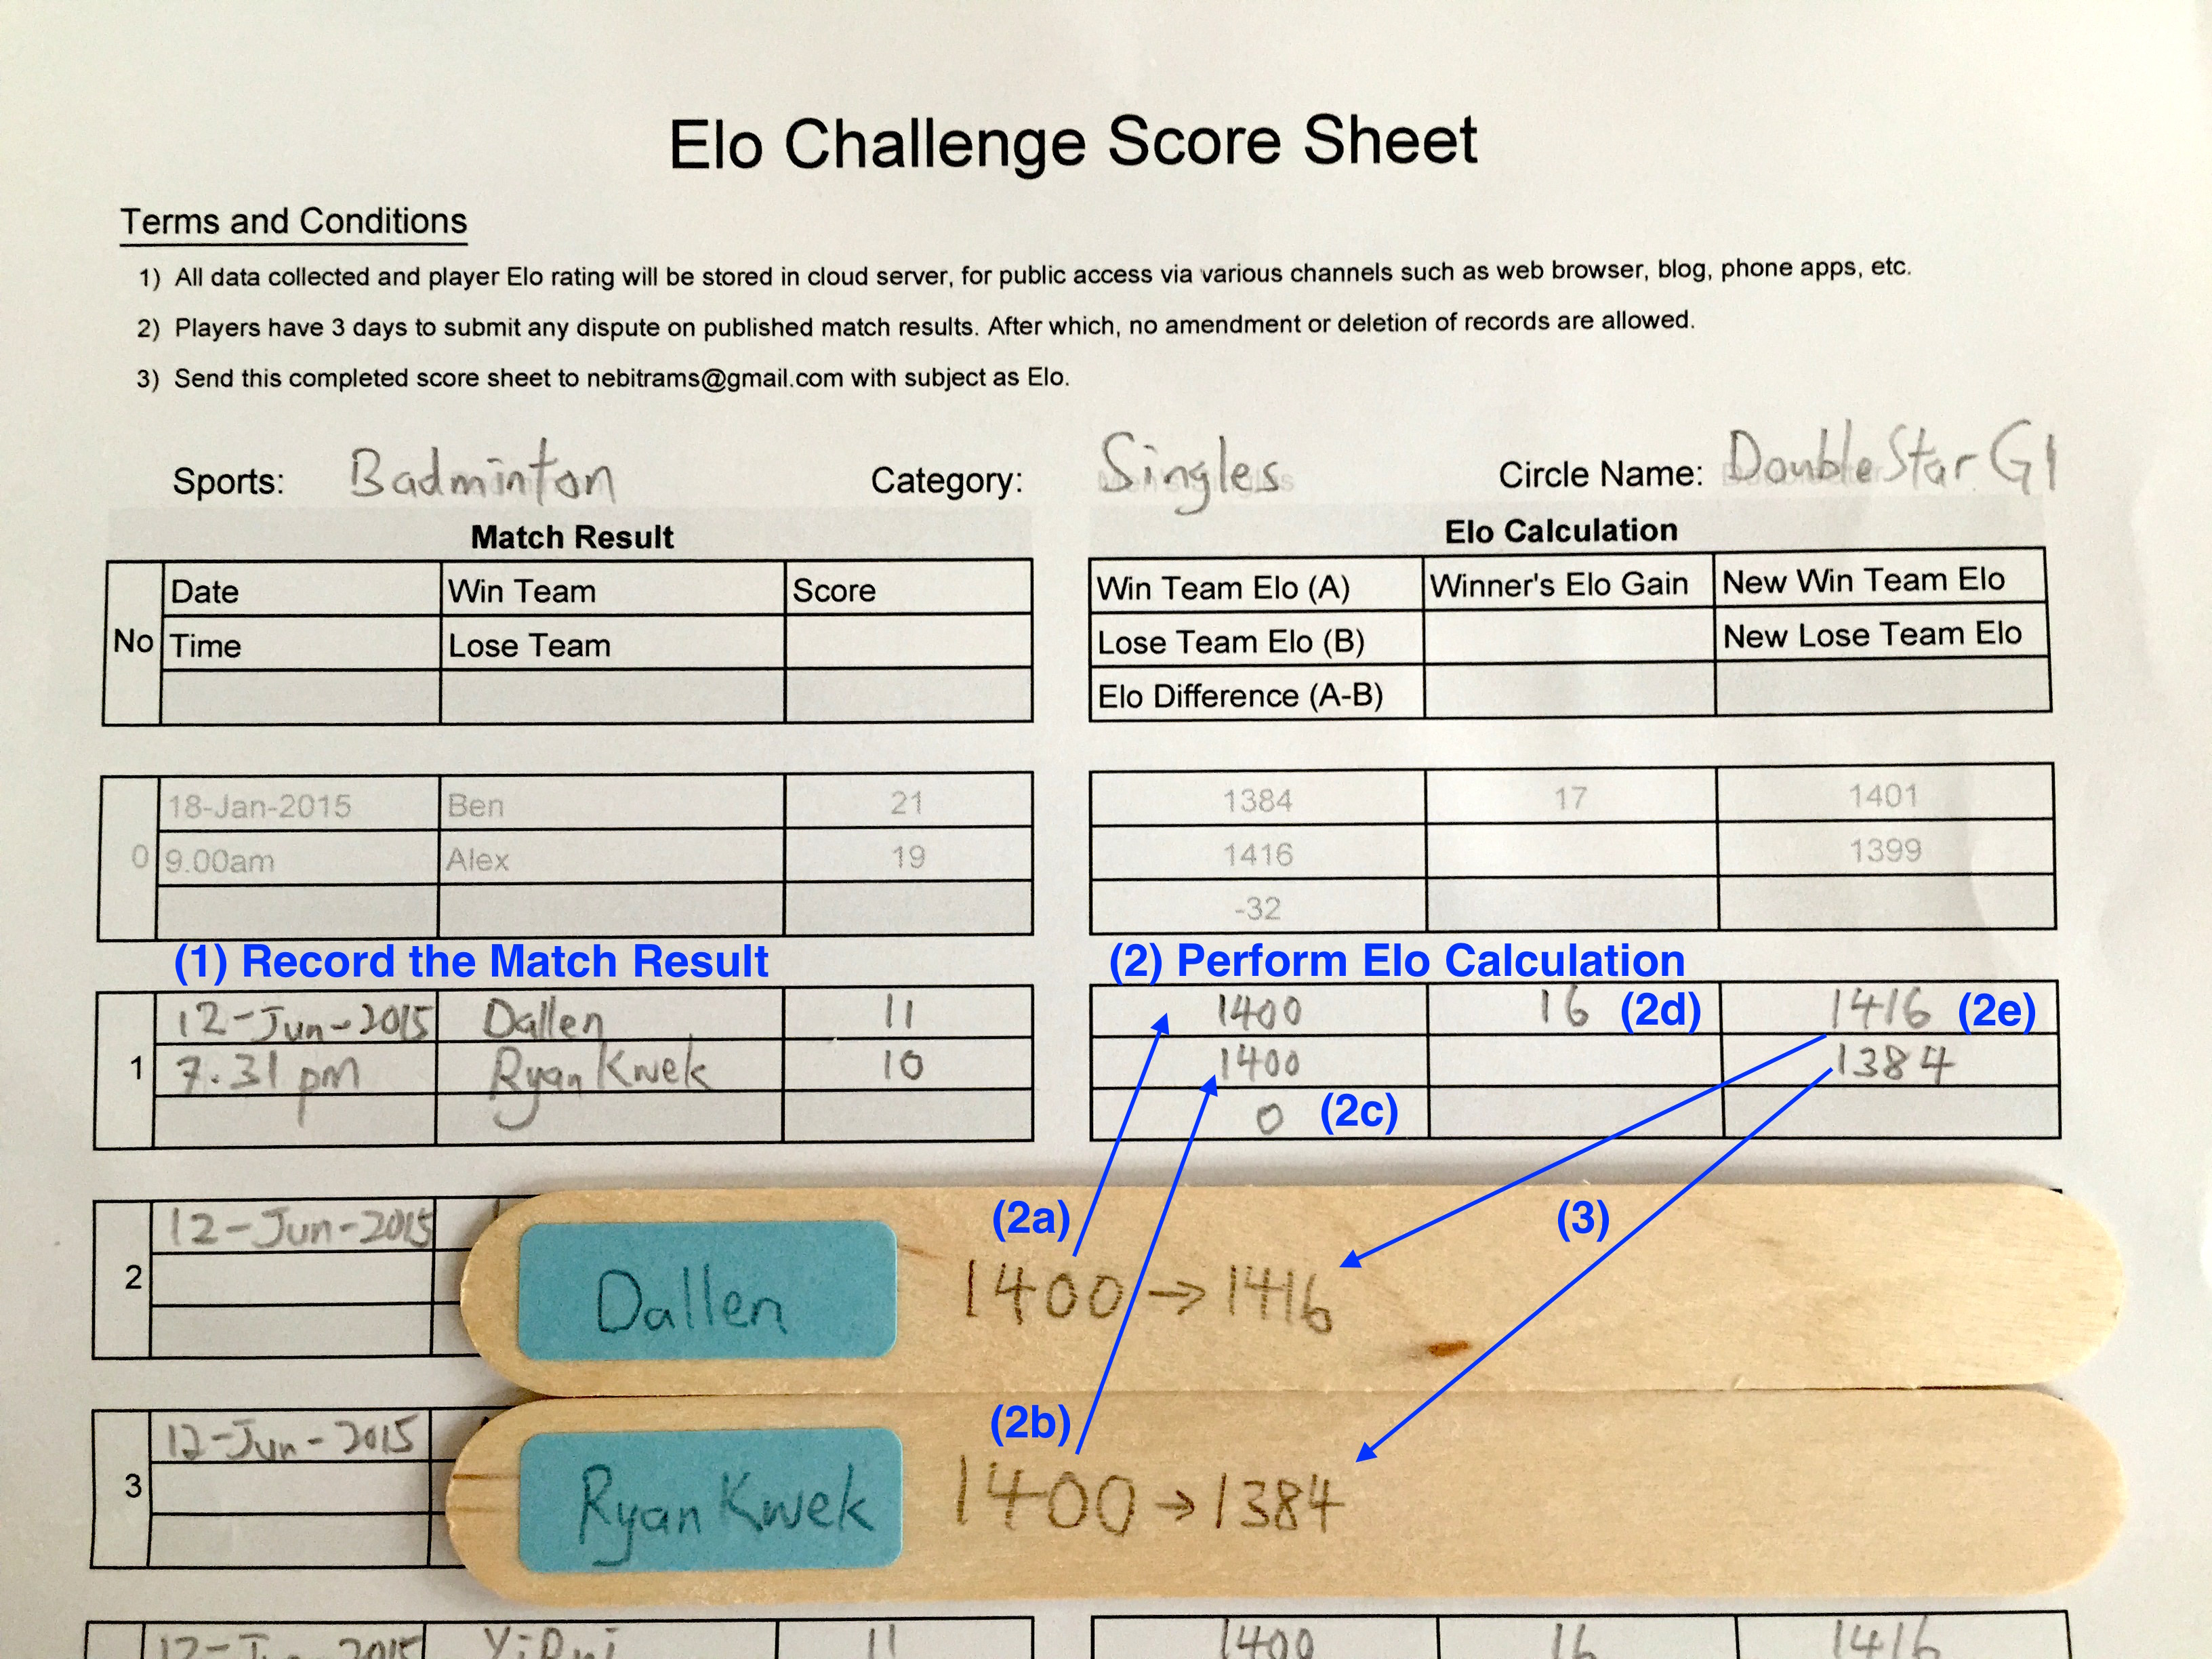 How To Calculate Elo Points Manually